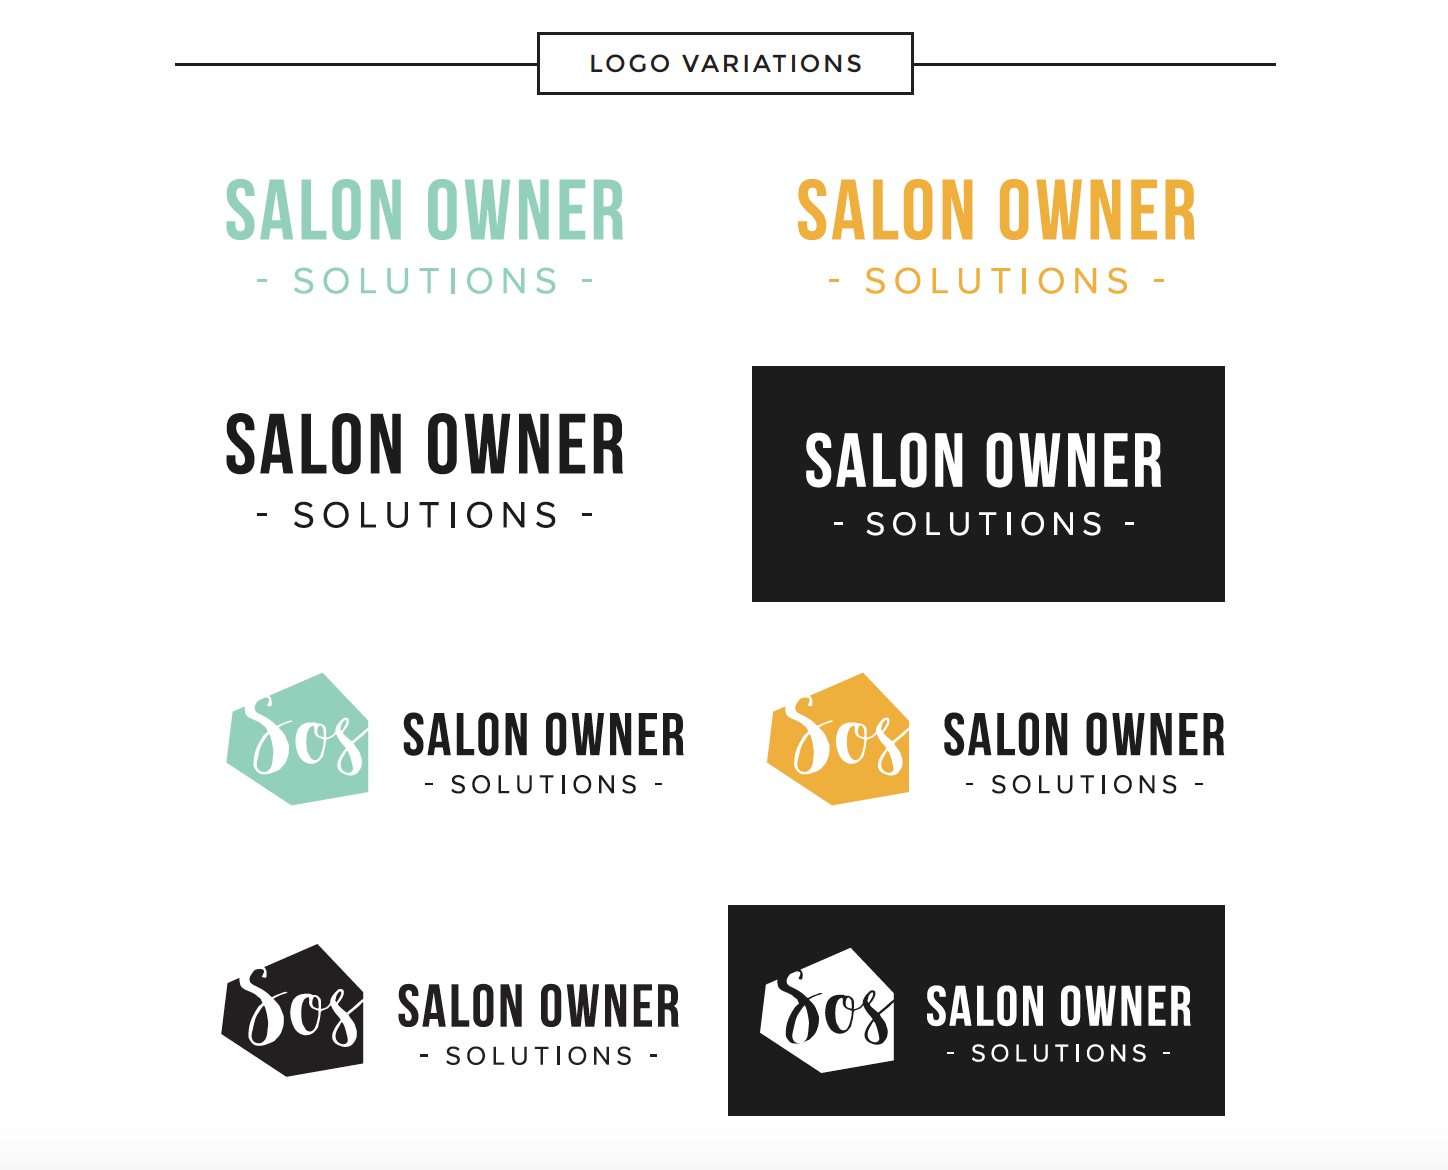 brand stylesheet by Function Creative Co.